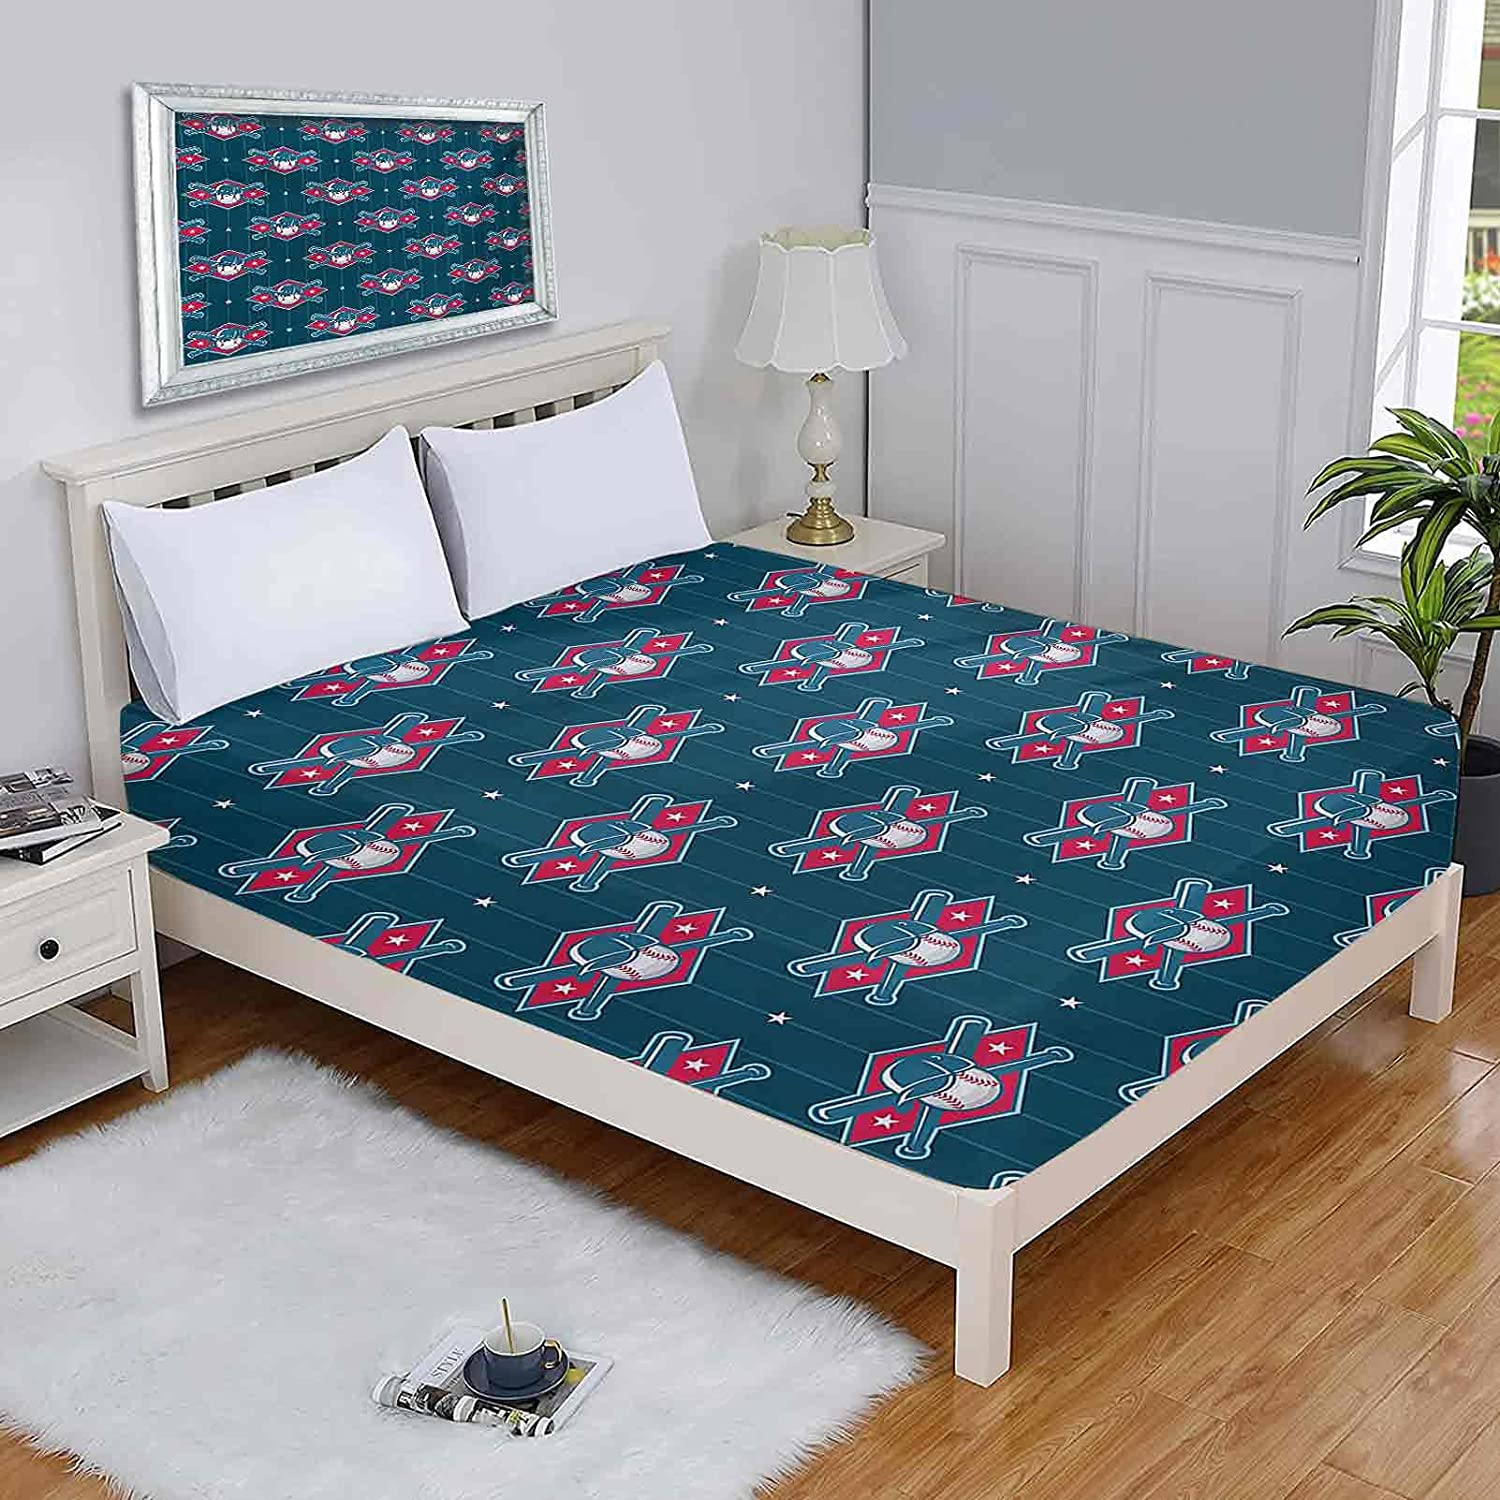 Sports Queen Mattress Cover Modern Un Competing Shipping included Sale Special Price Baseball Player